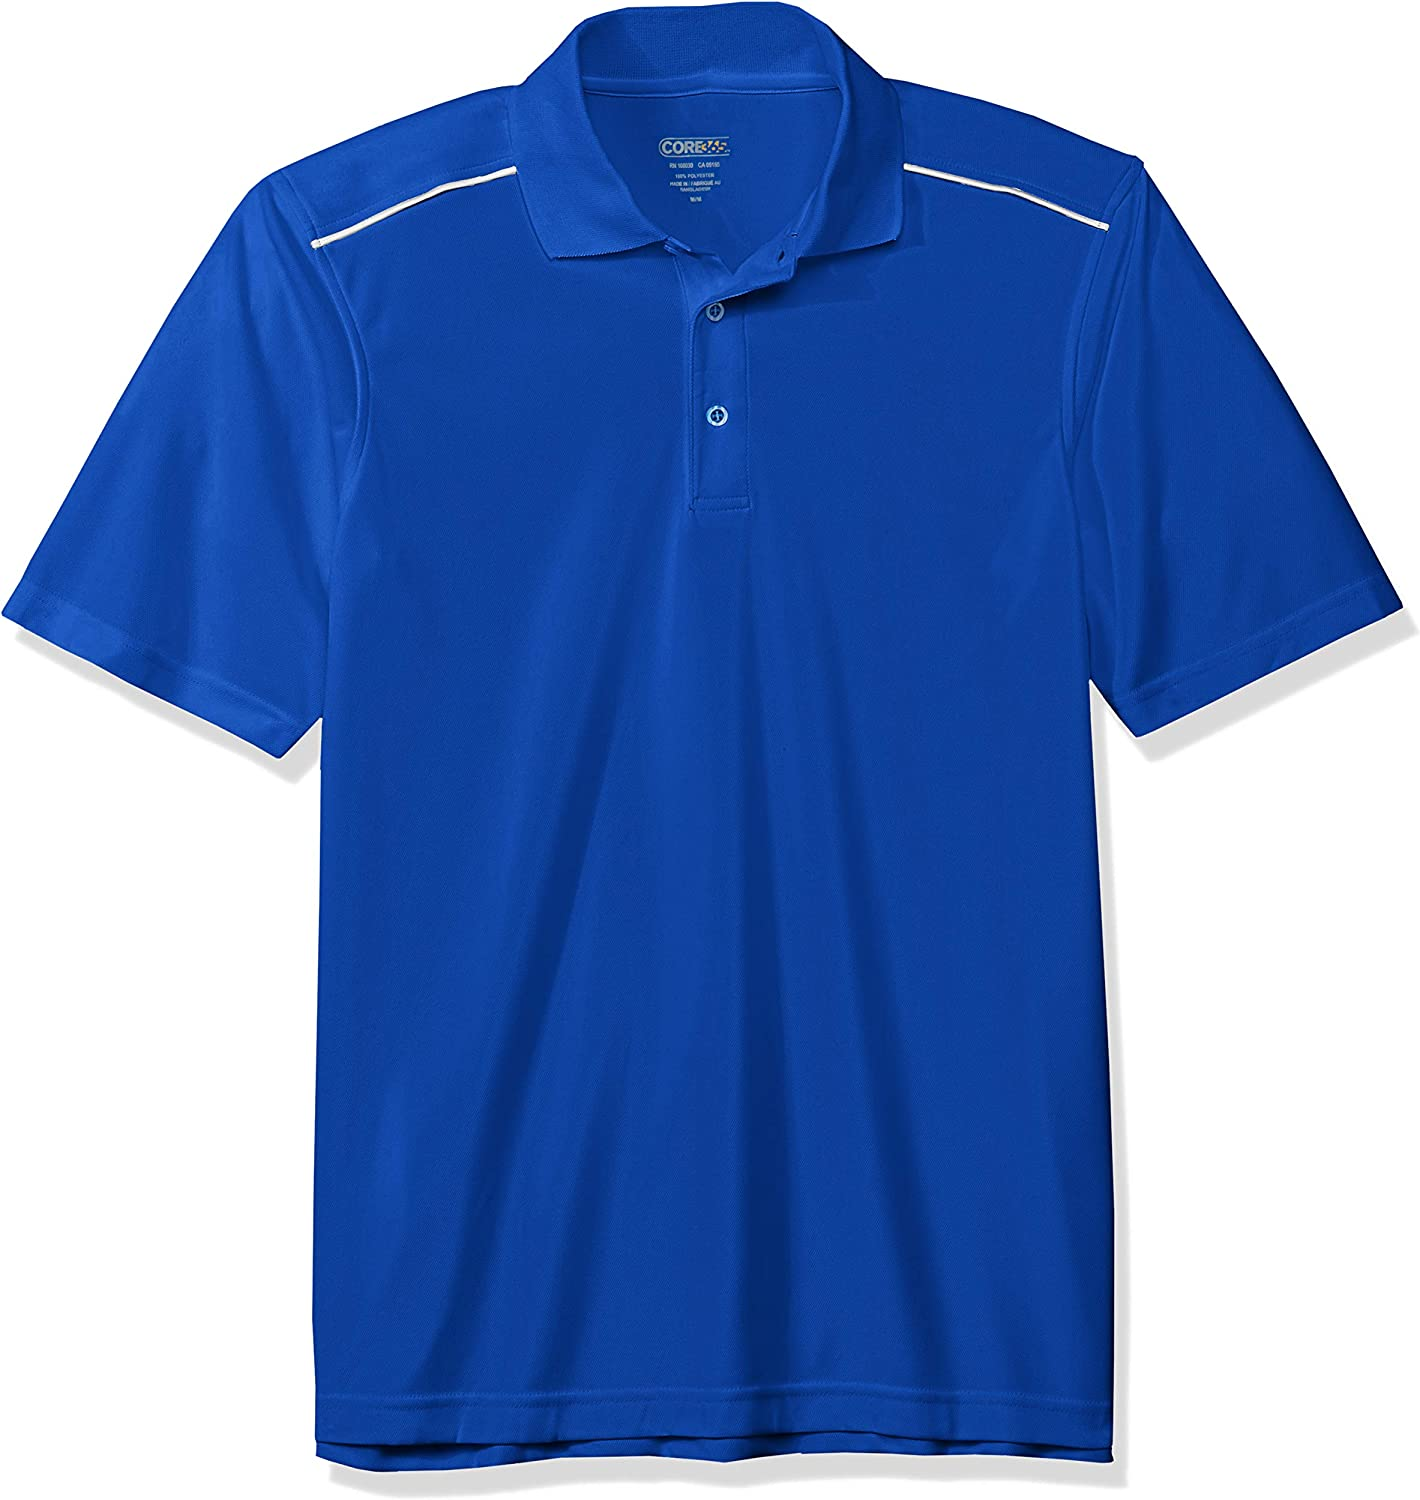 Ashe City Mens Acty-88181r-performance Piqu/é Polo with Reflective Piping